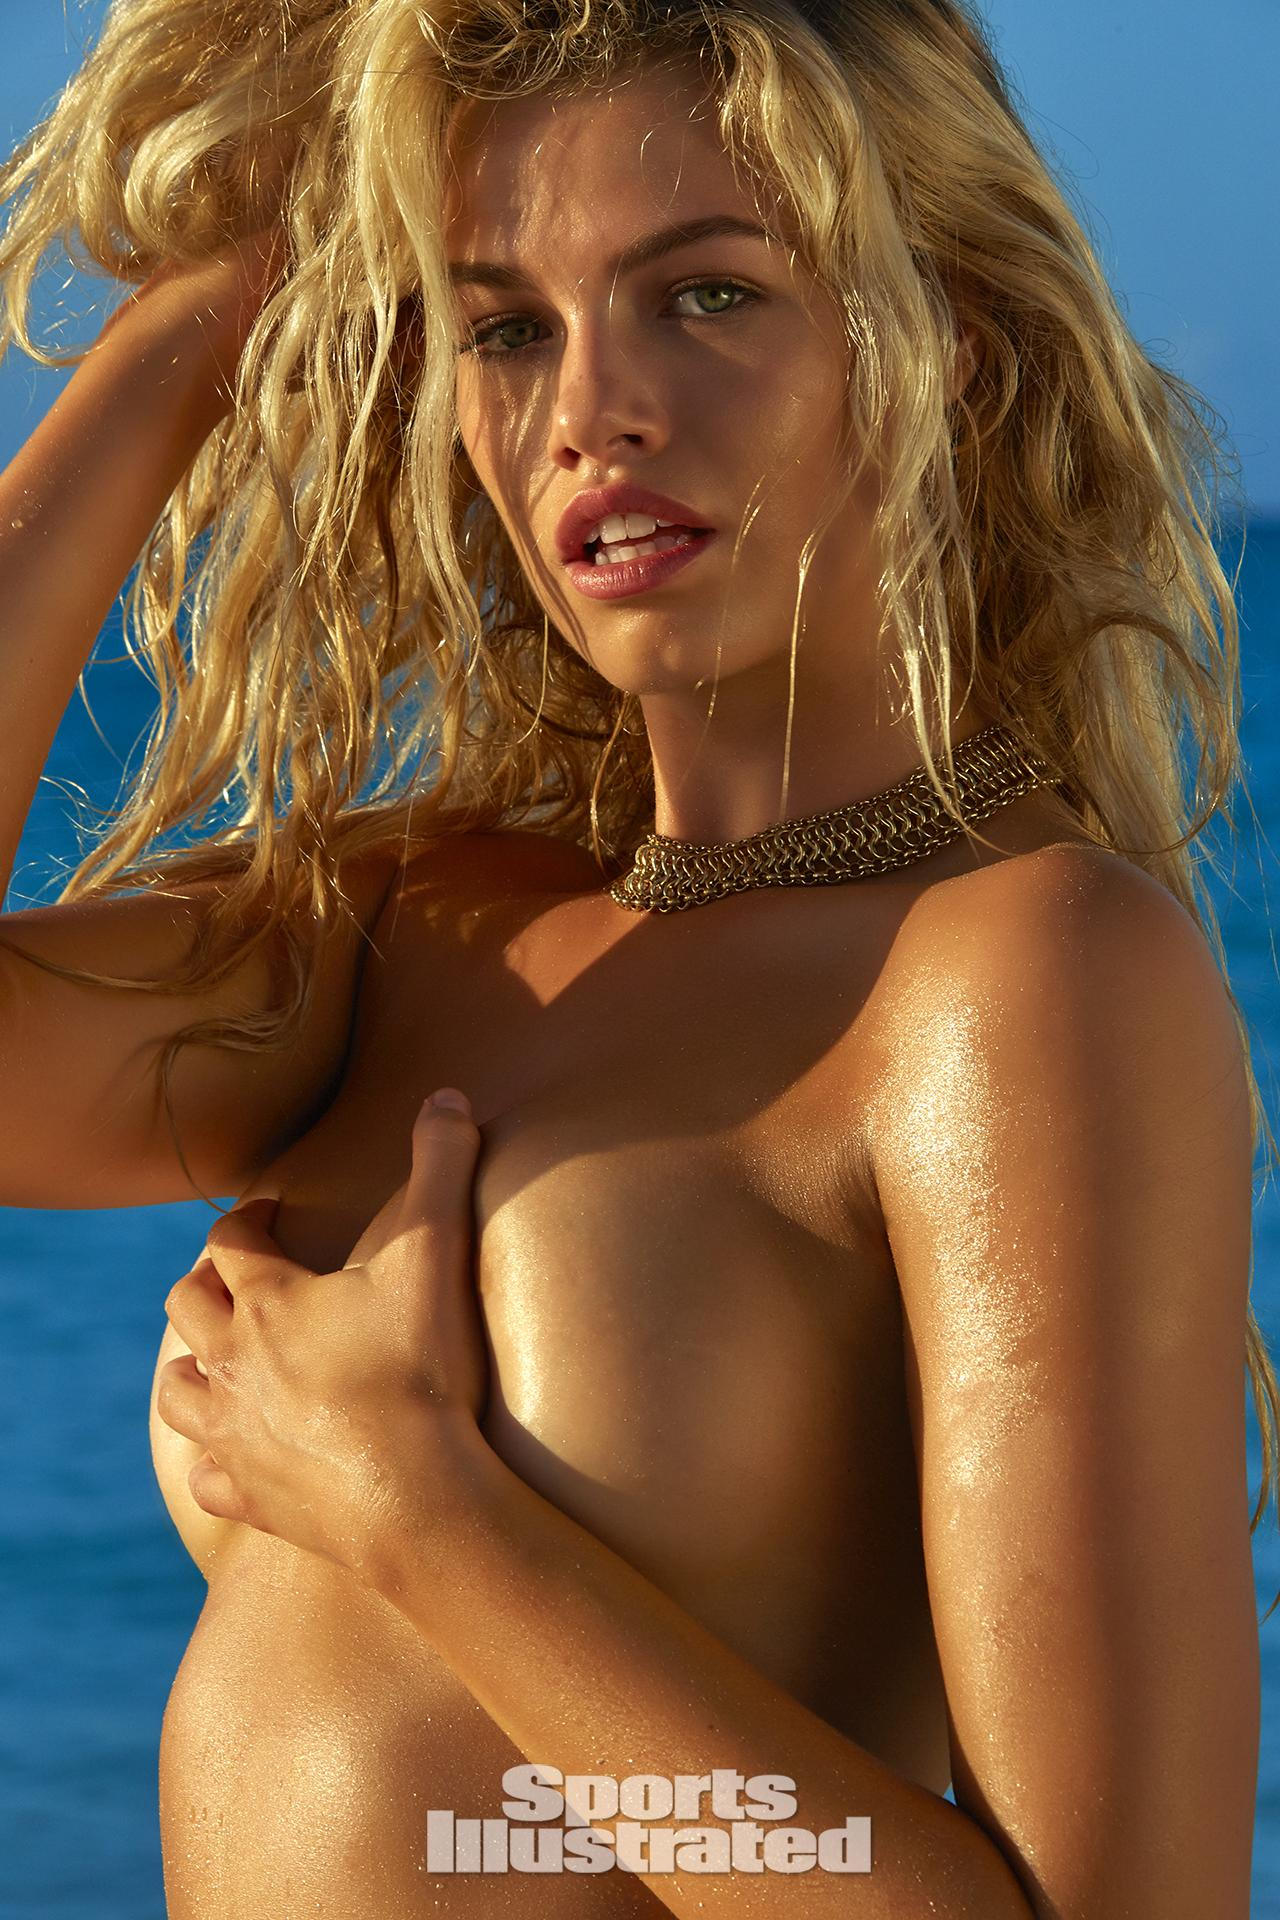 Hailey Clauson